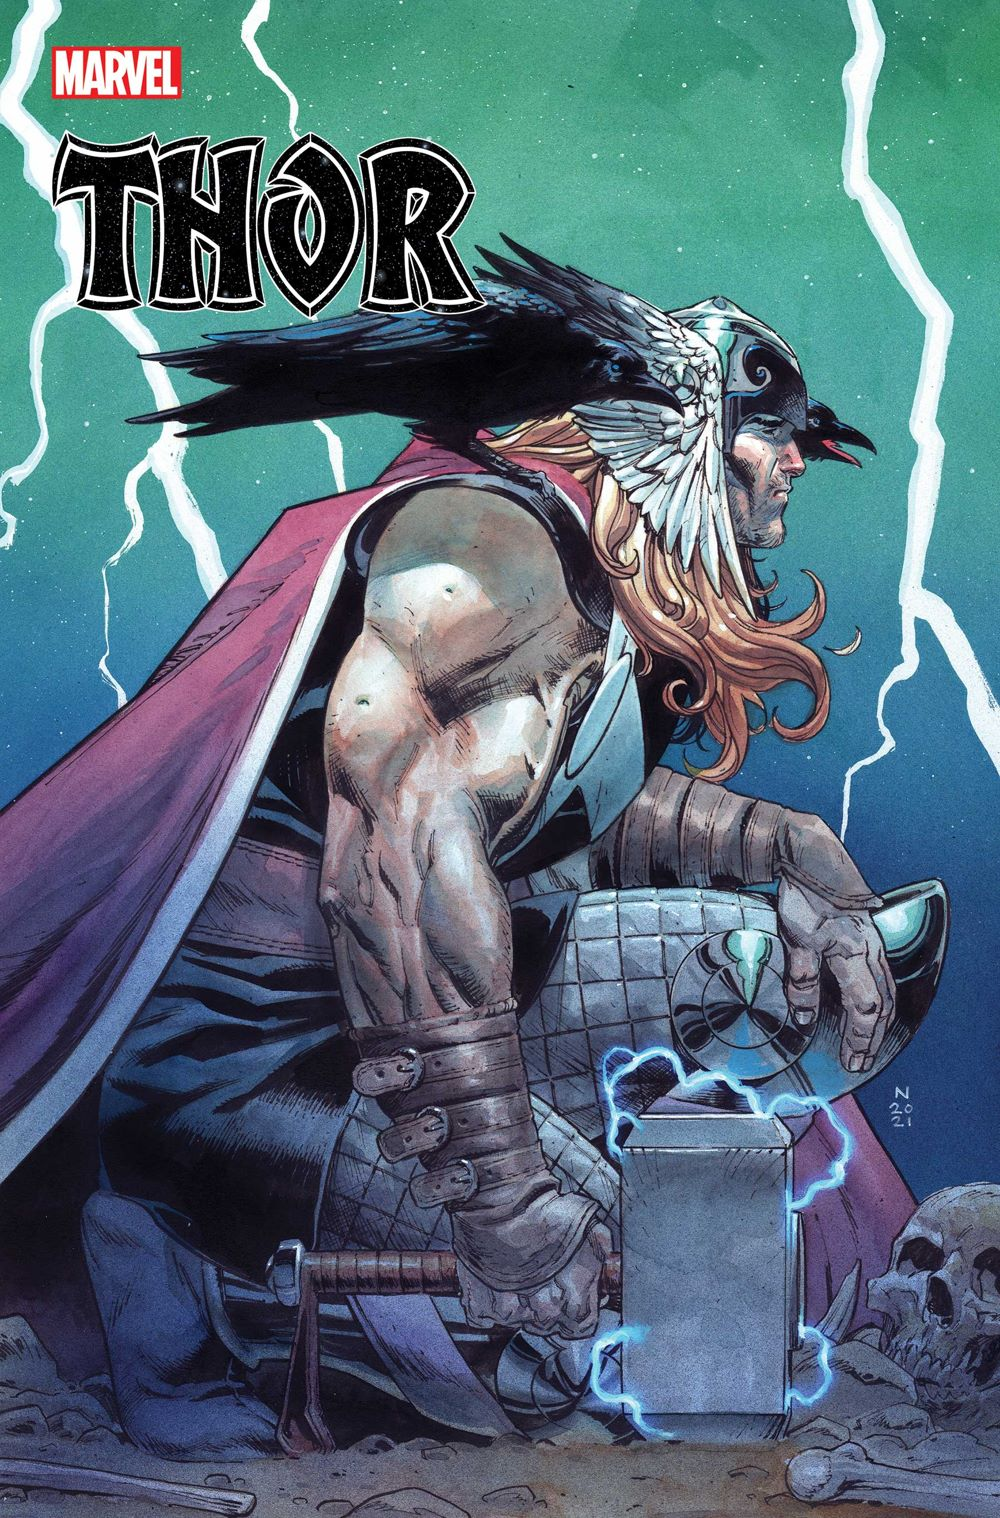 THOR2020015_Klein-var Marvel Comics July 2021 Solicitations